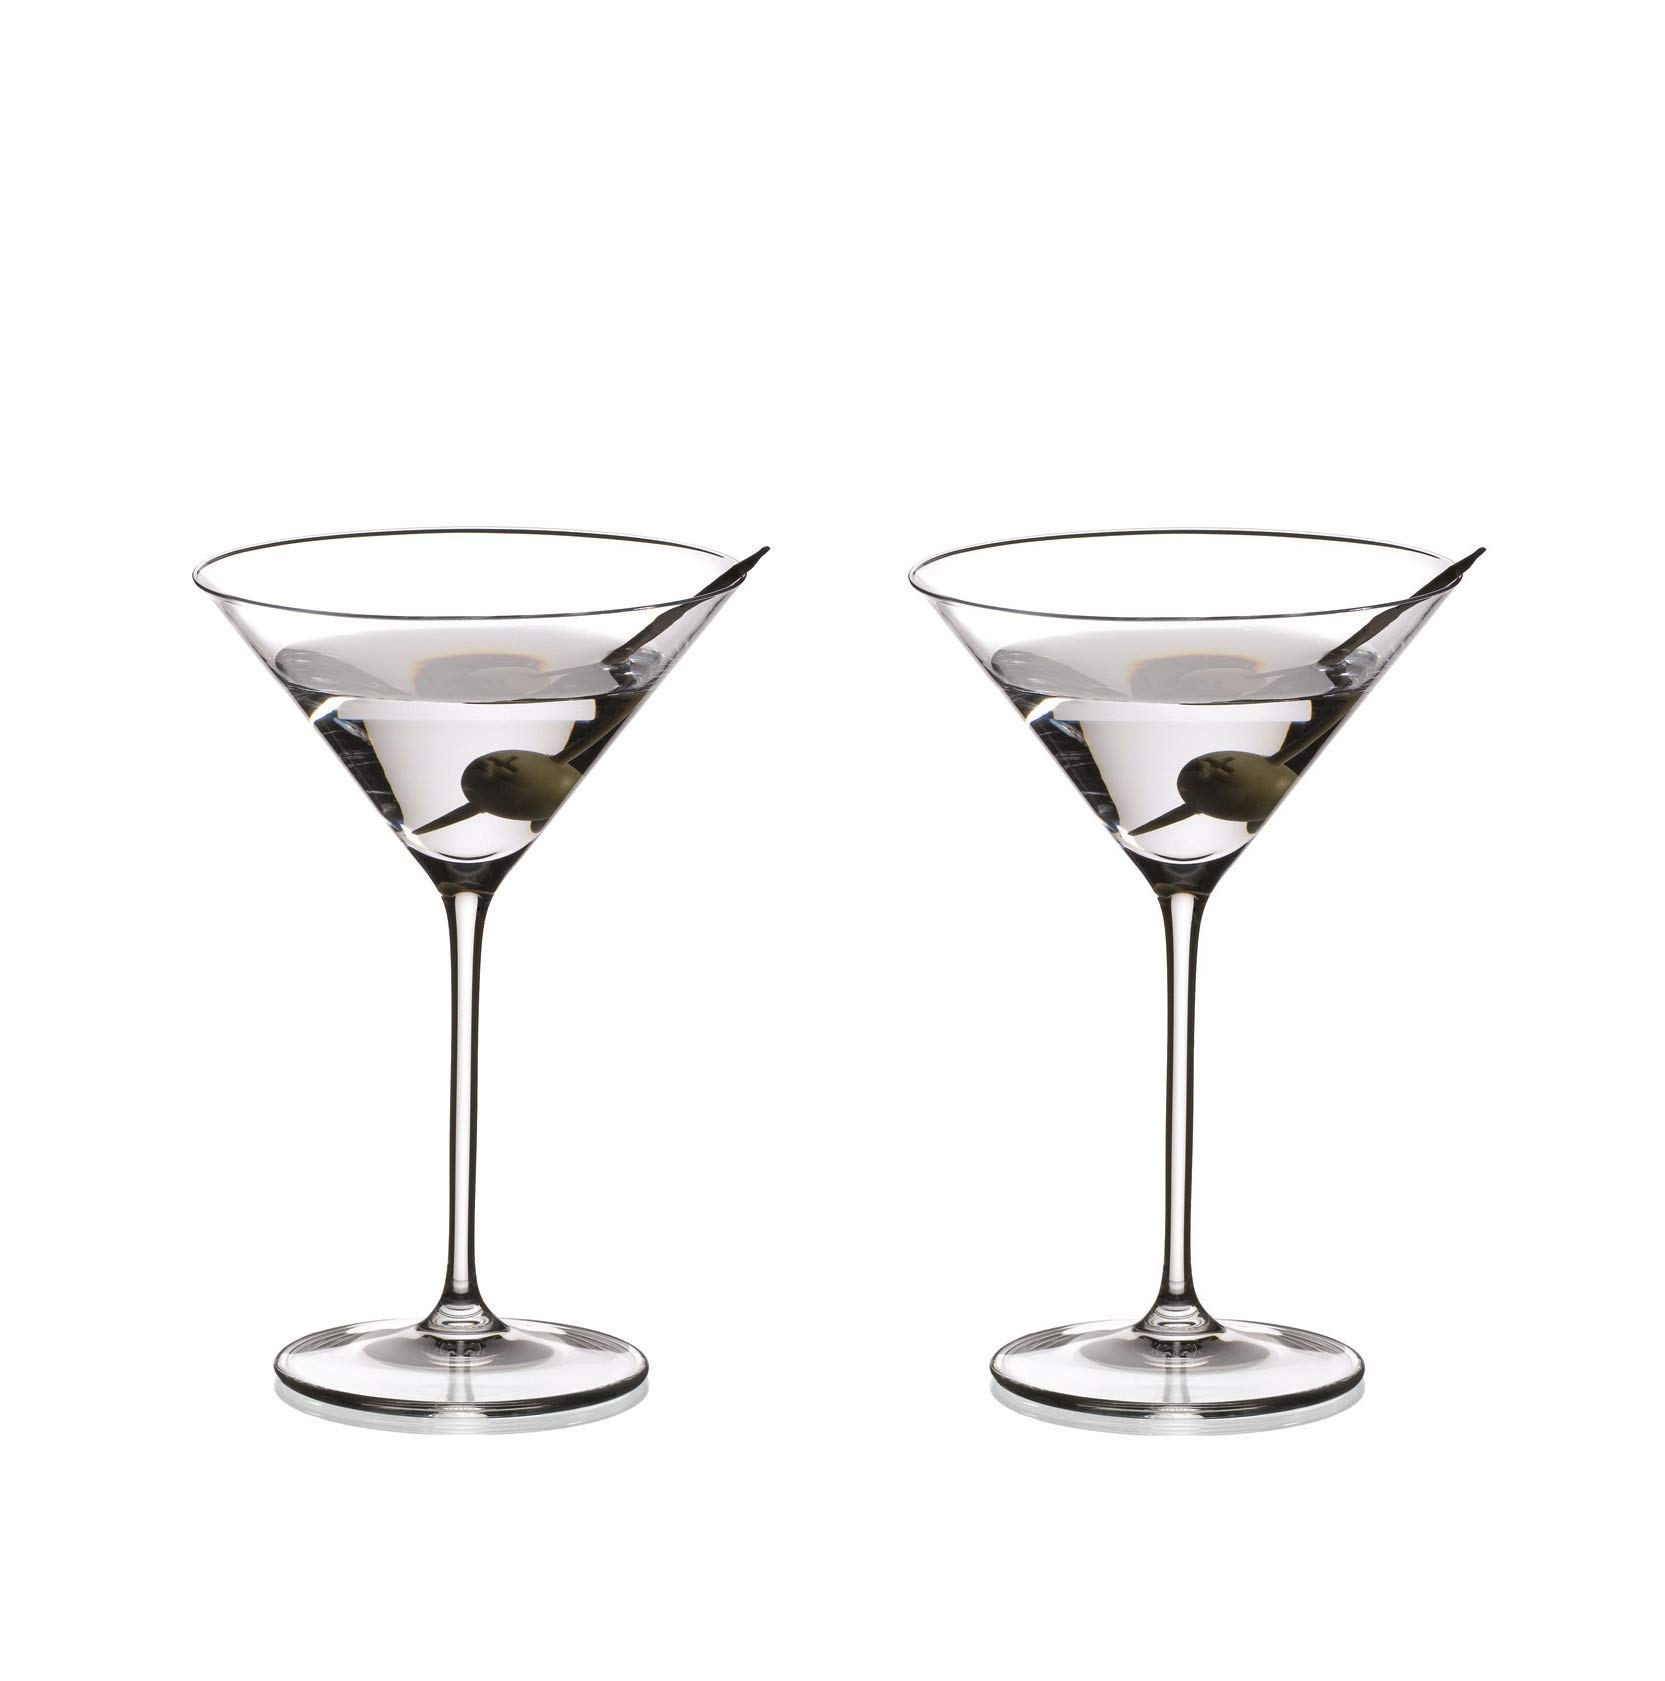 Riedel Vinum XL Martini Glasses, Set of 2 by Riedel